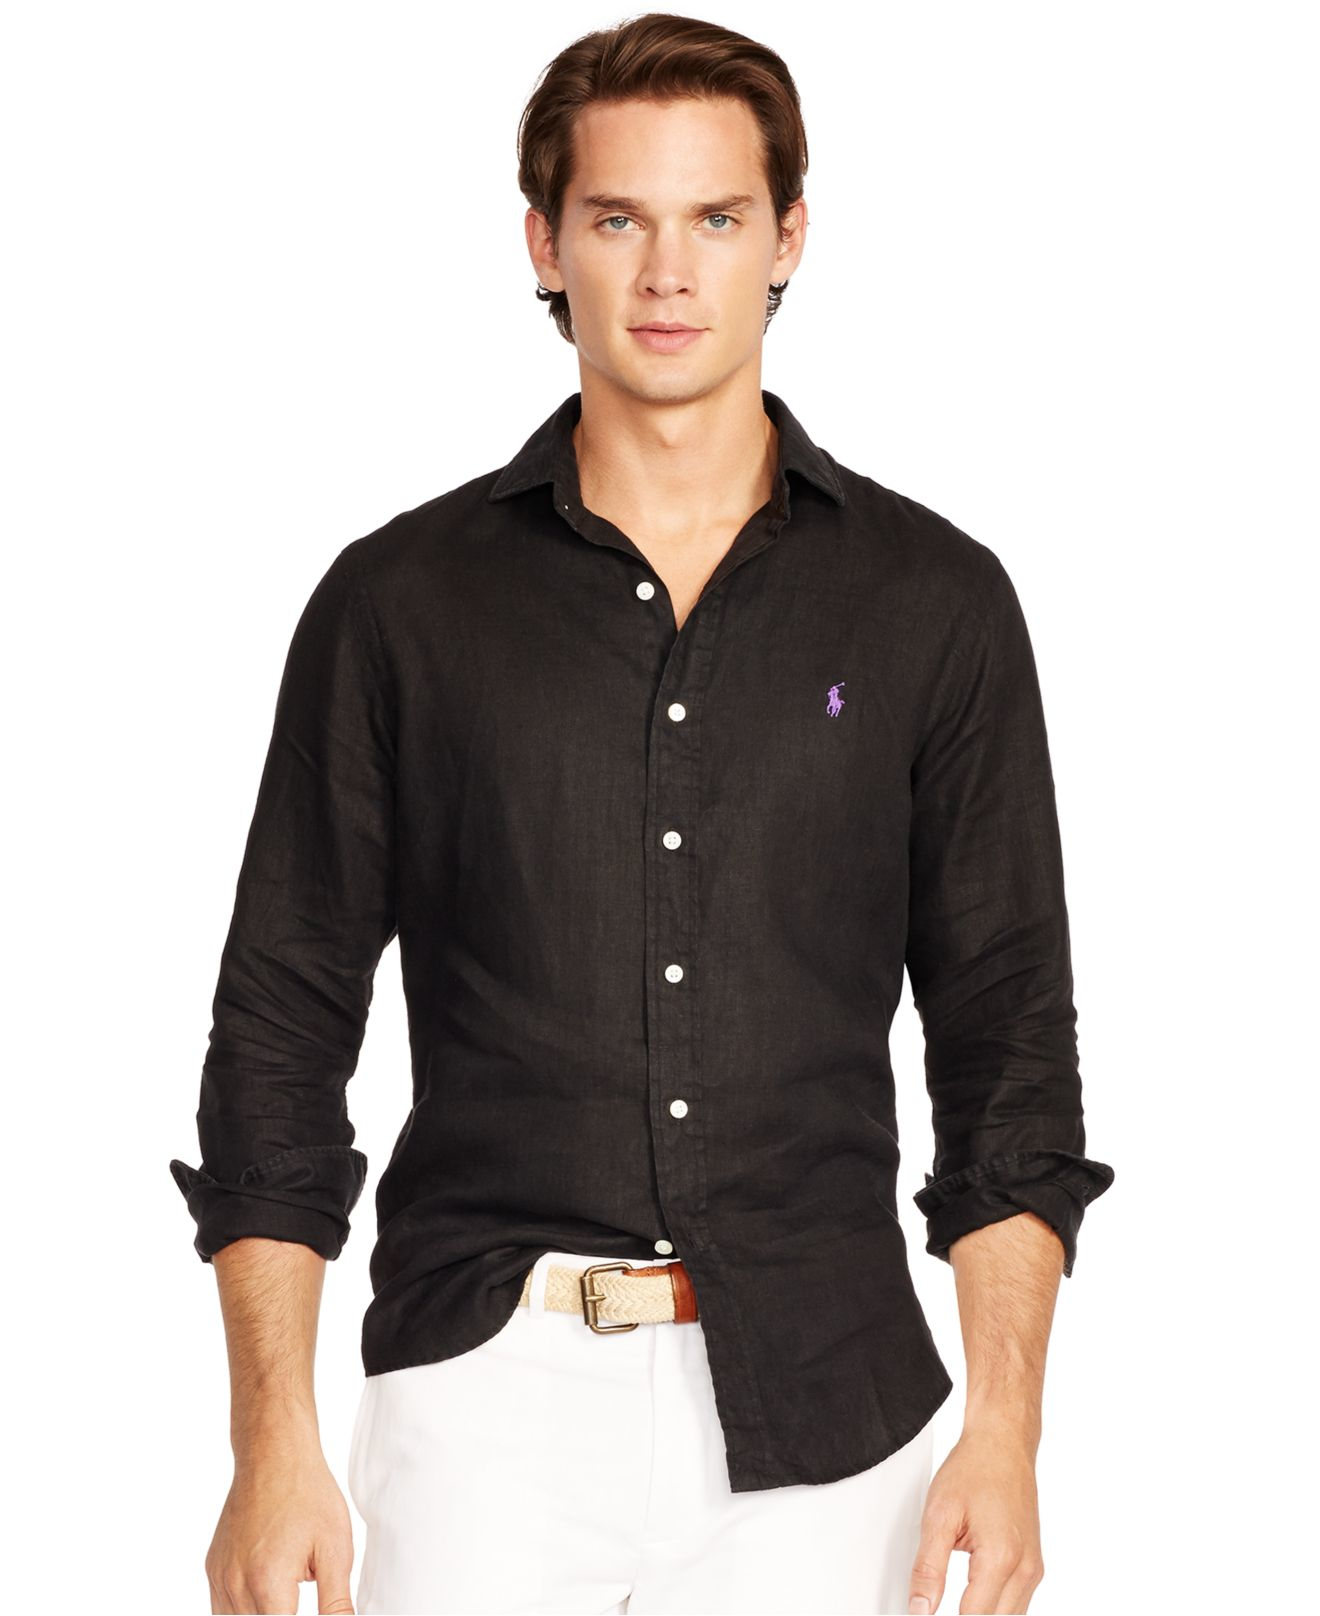 Mens Linen Shirts. When deciding on selections of shirts to enhance a wardrobe, one of the best solutions is a variety of men's linen hereuloadu5.ga only are linen shirts extremely handsome, they are also shirts that wear well and are meant to last.